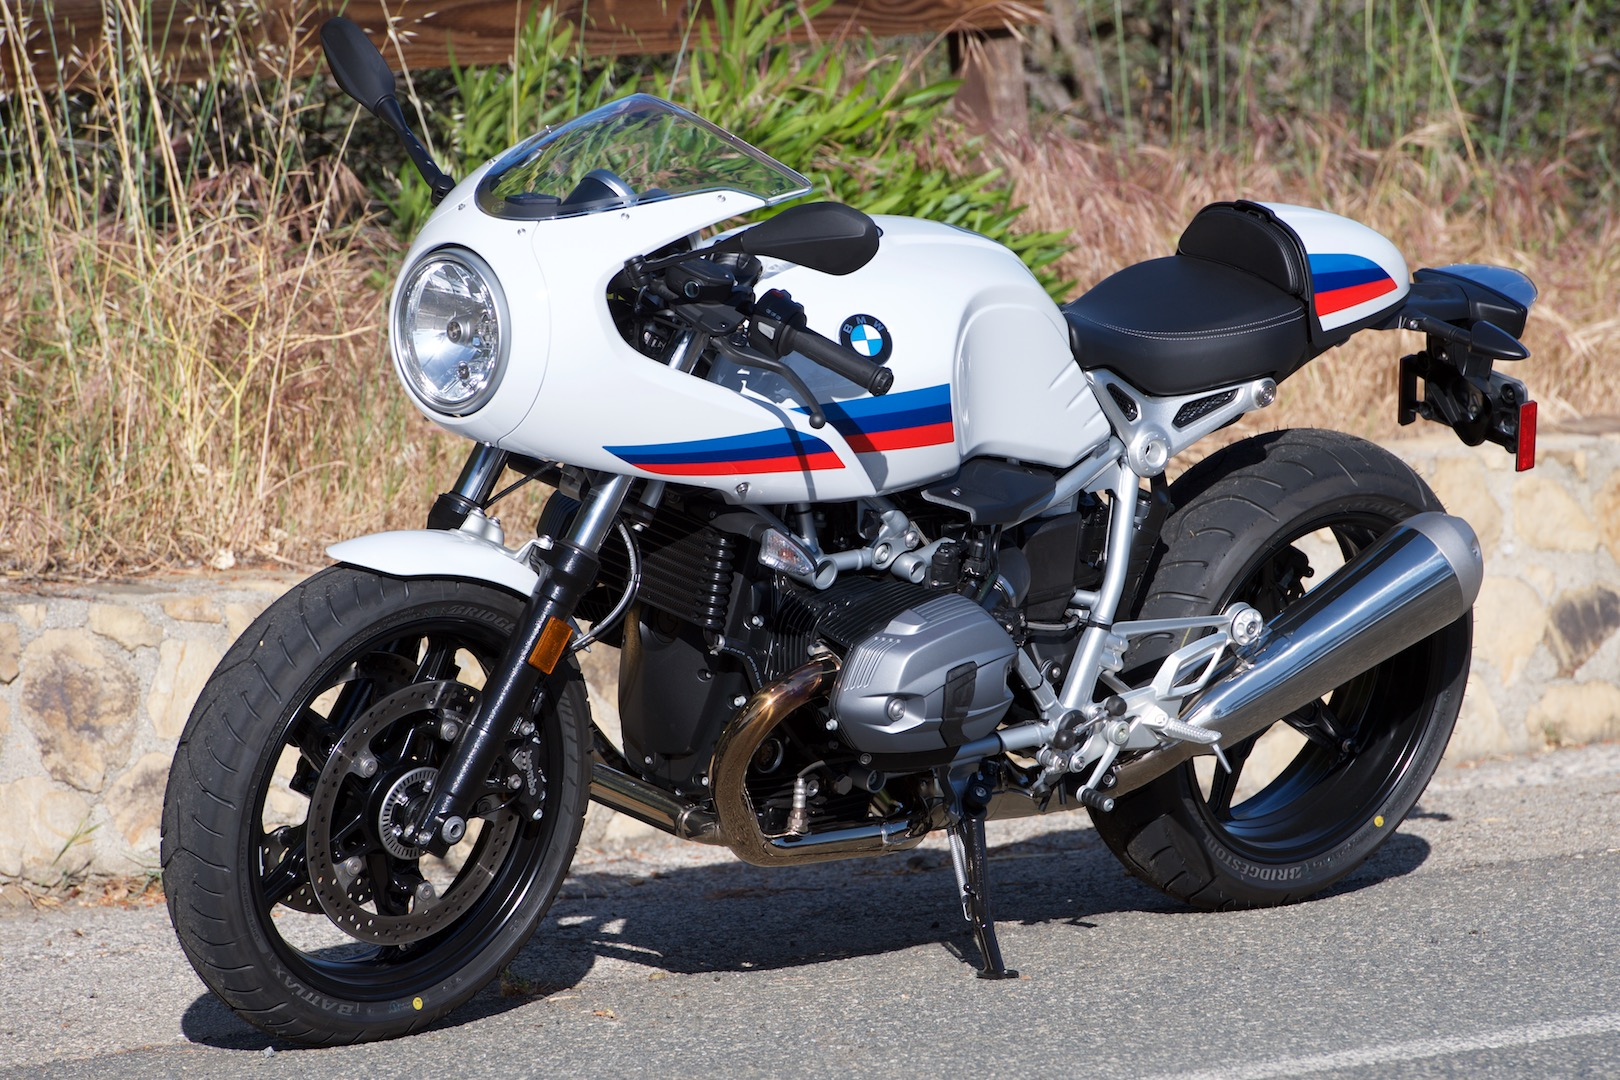 2017 bmw r ninet racer review 14 fast facts. Black Bedroom Furniture Sets. Home Design Ideas